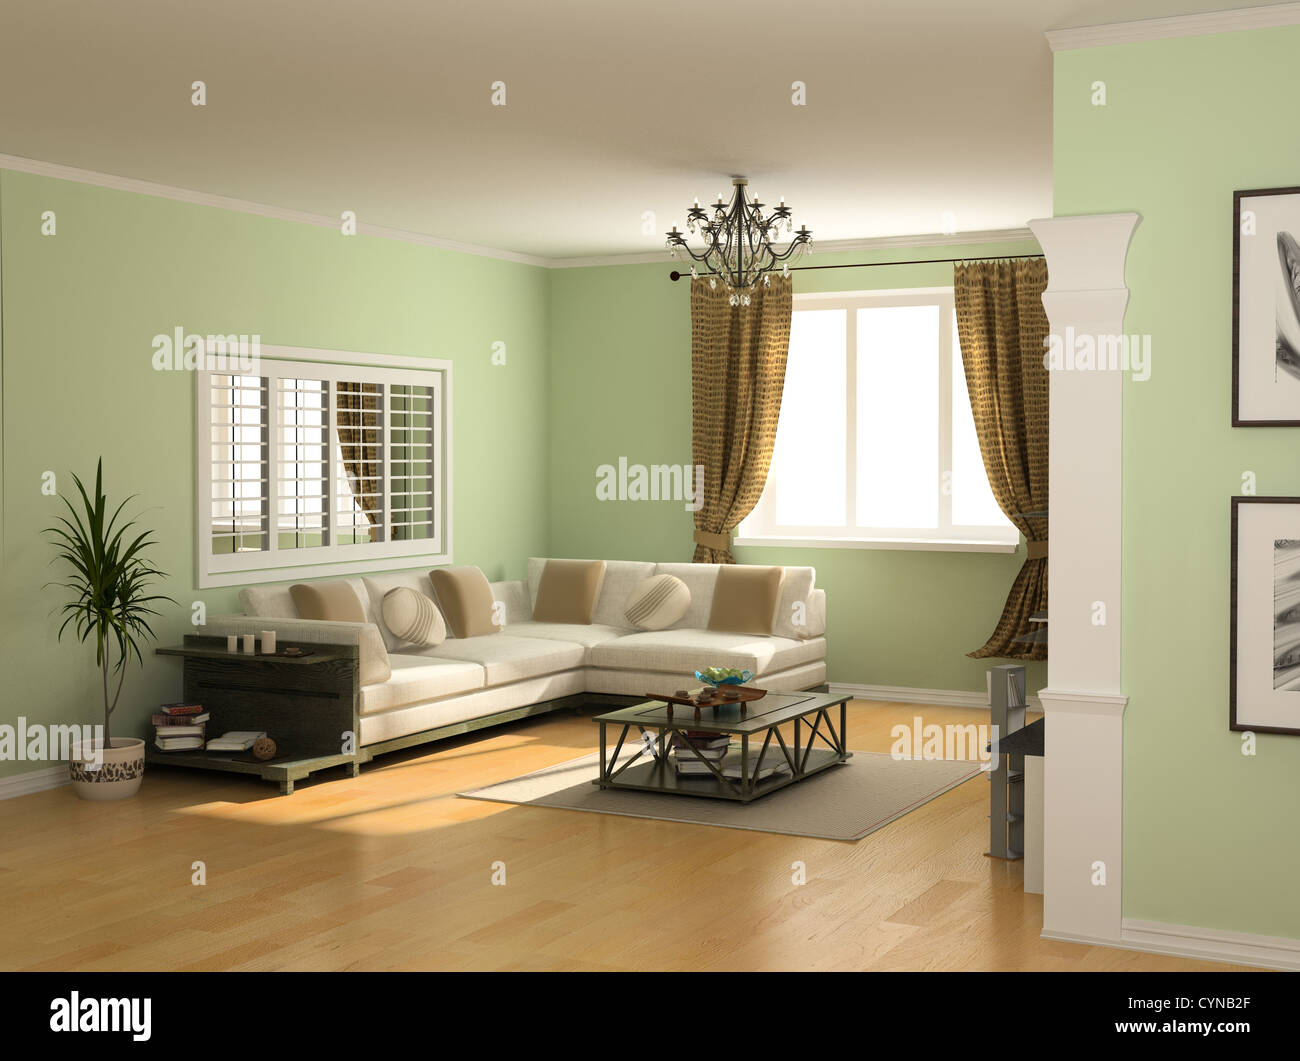 modern interior design (private apartment 3d rendering) - Stock Image